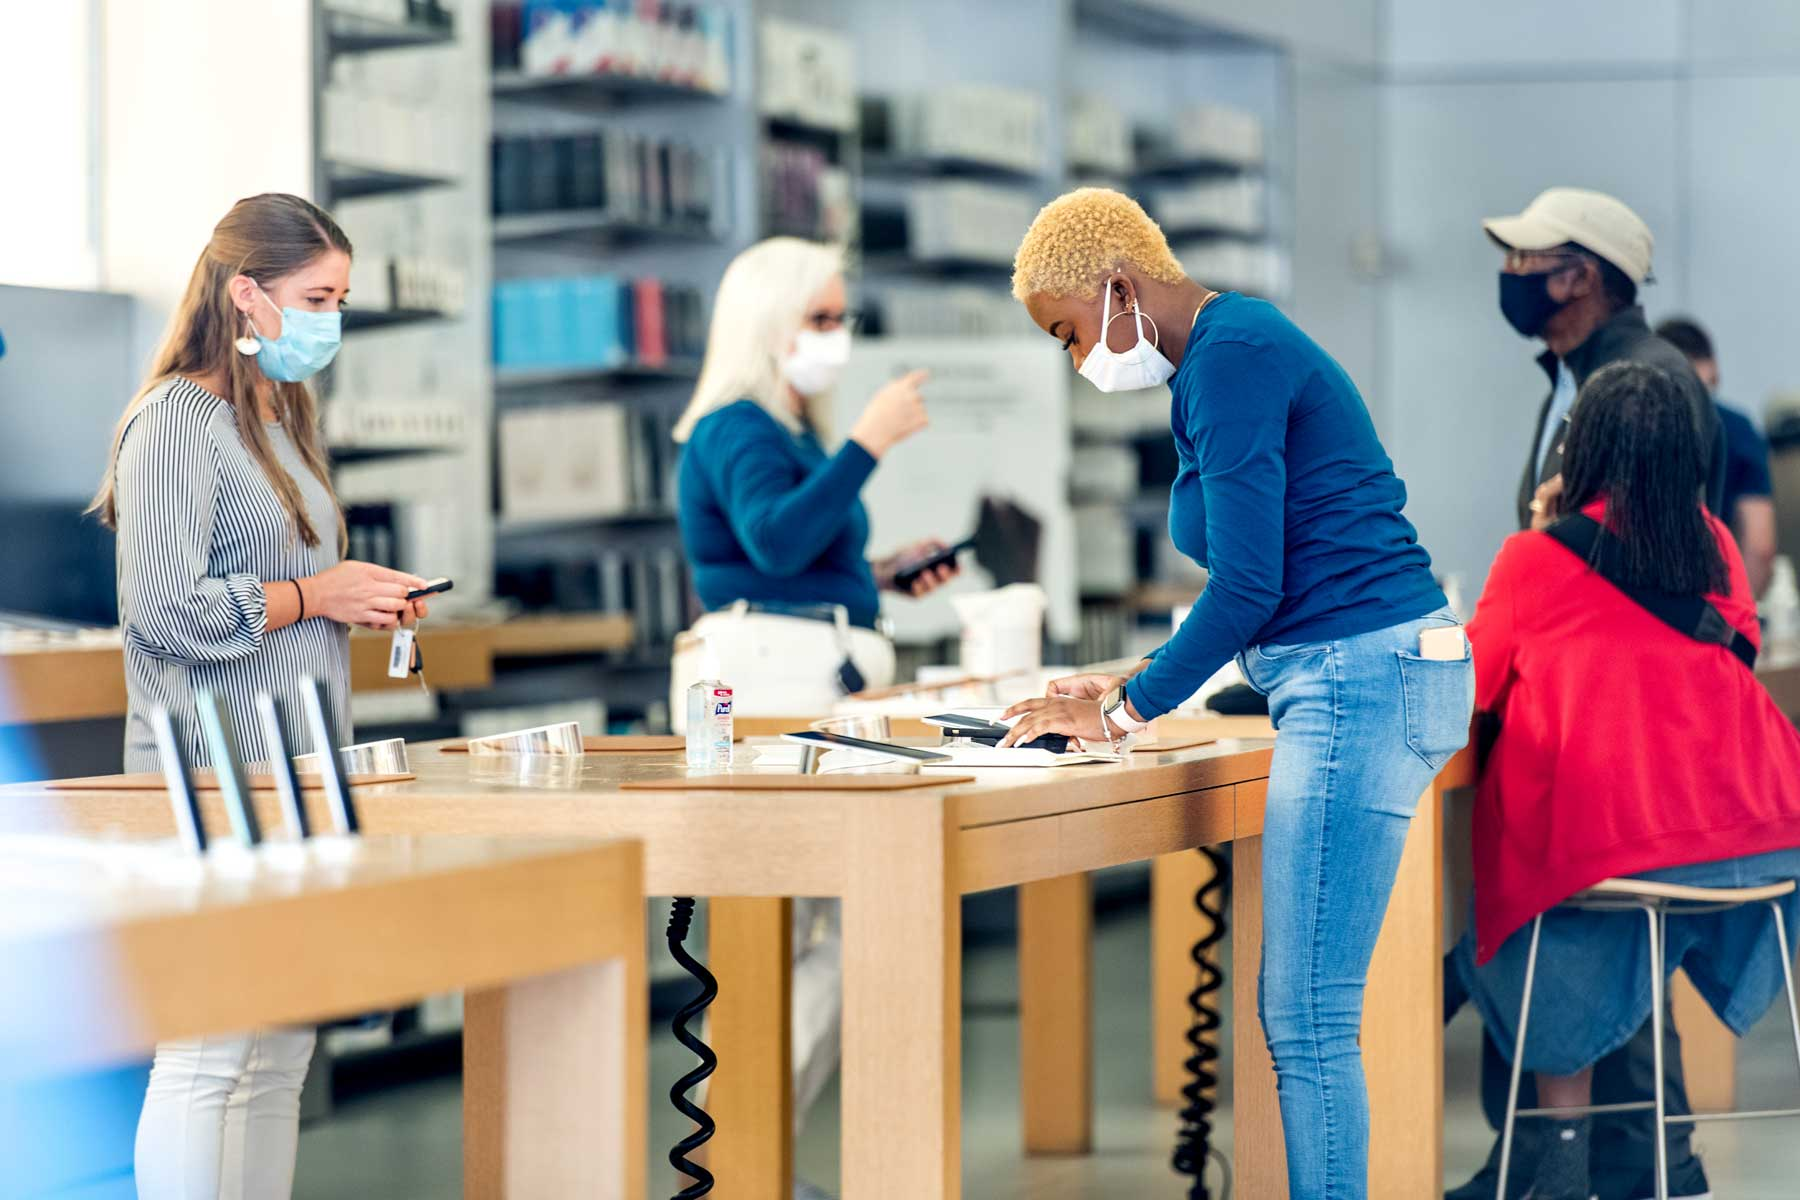 Apple Re-Opens Retail Store In Charleston, SC Despite COVID-19 Pandemic